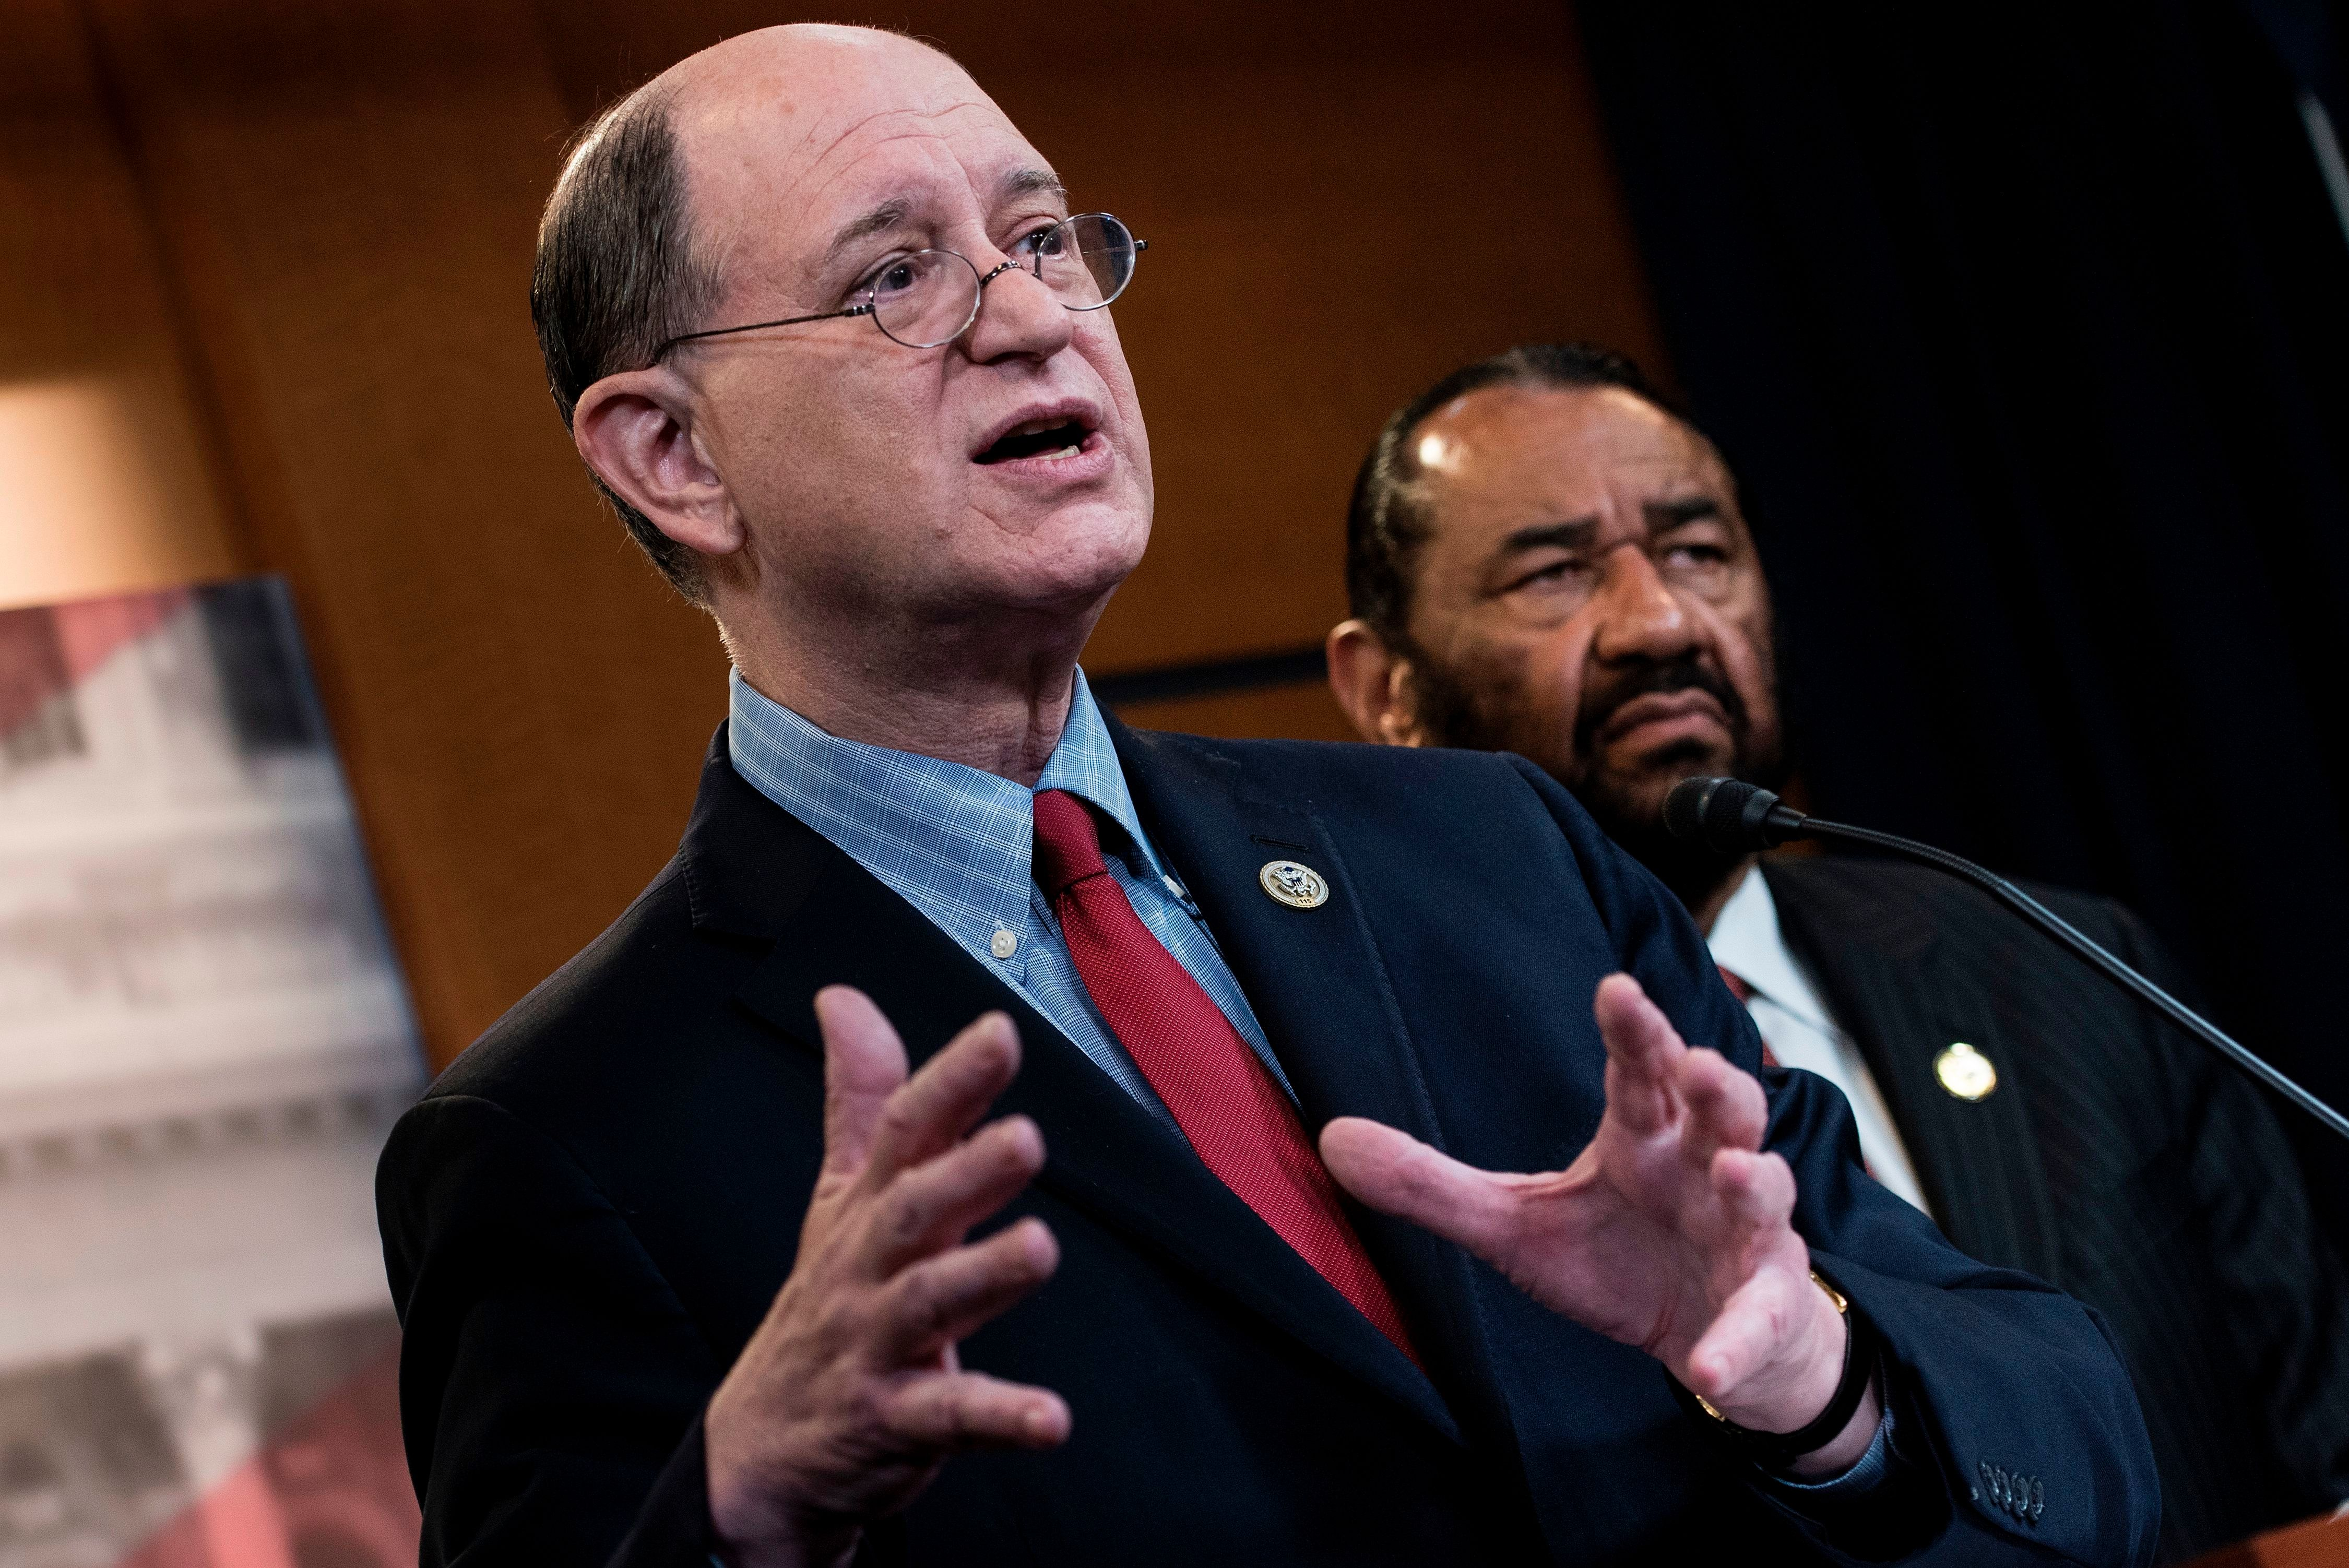 US Representative Brad Sherman (L), Democrat of California,  and US Representative Al Green, Democrat of Texas, take questions about articles of impeachment for US President Donald Trump during a press conference on Capitol Hill June 7, 2017 in Washington, DC. Green submitted articles of impeachment against Trump Wednesday in the first legislative step for any congressional bid to remove the president from office. / AFP PHOTO / Brendan Smialowski        (Photo credit should read BRENDAN SMIALOWSKI/AFP/Getty Images)